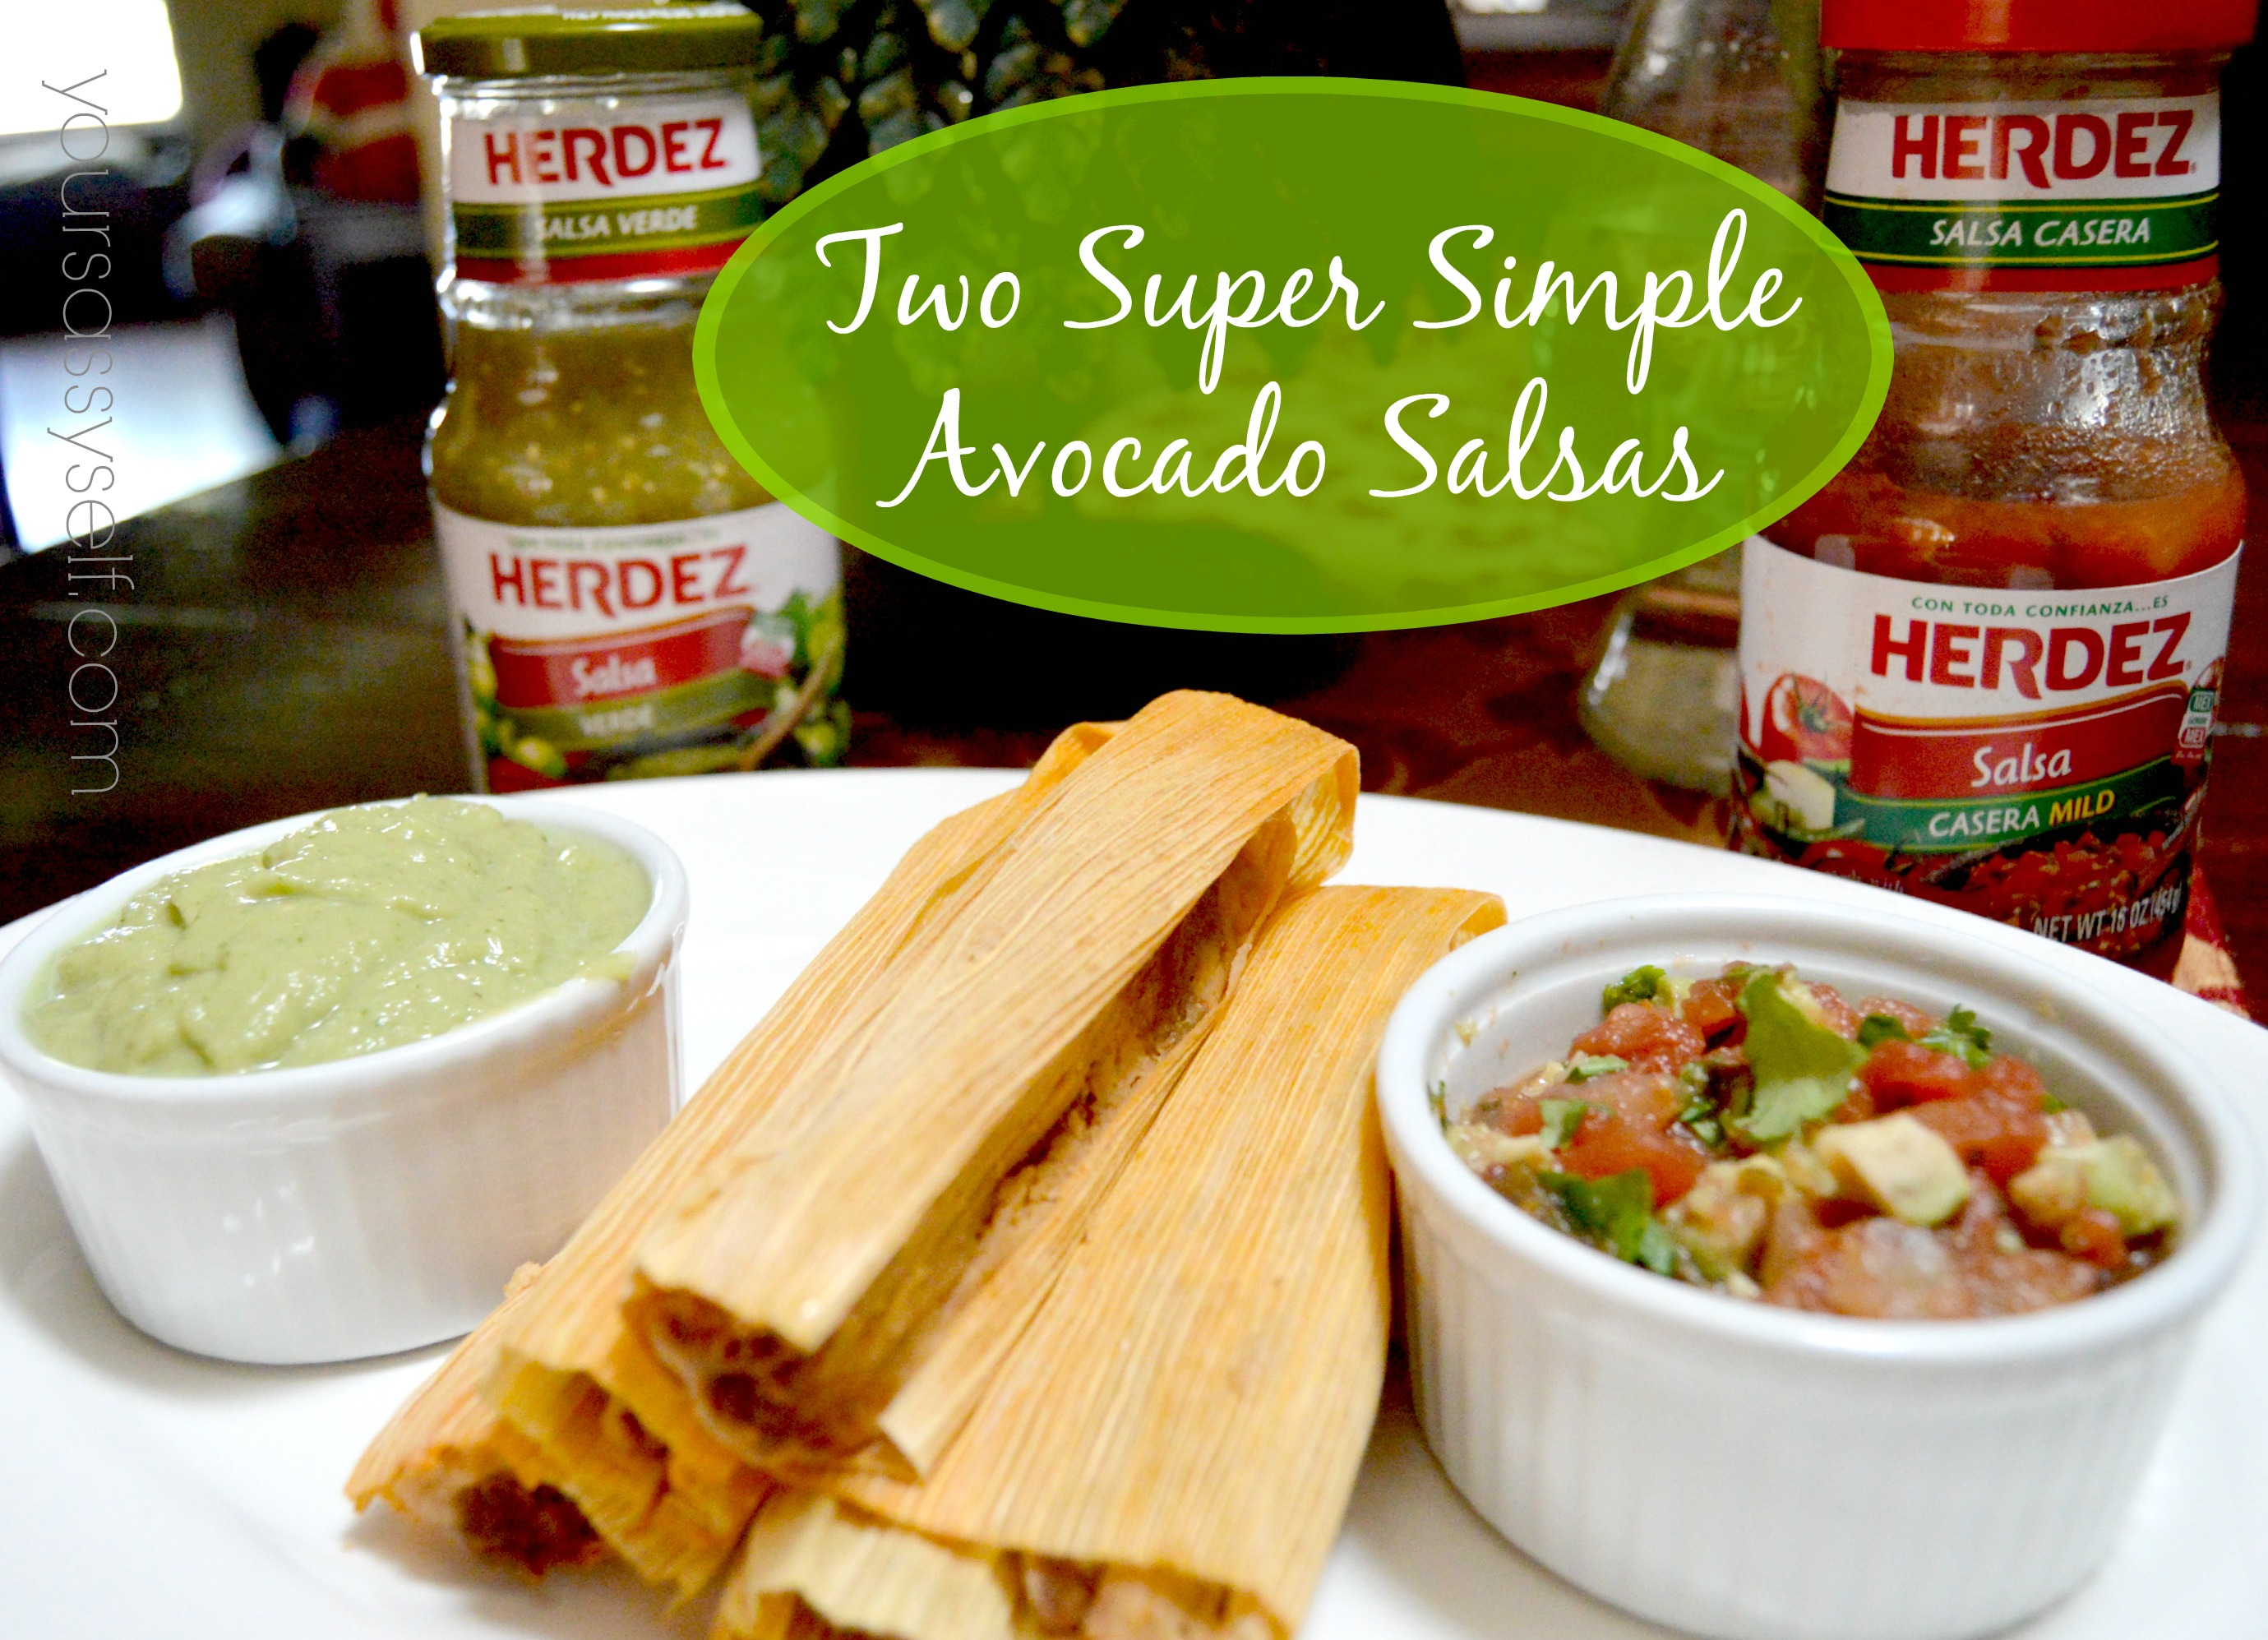 Two Super Simple Avocado Salsas for Las Posadas